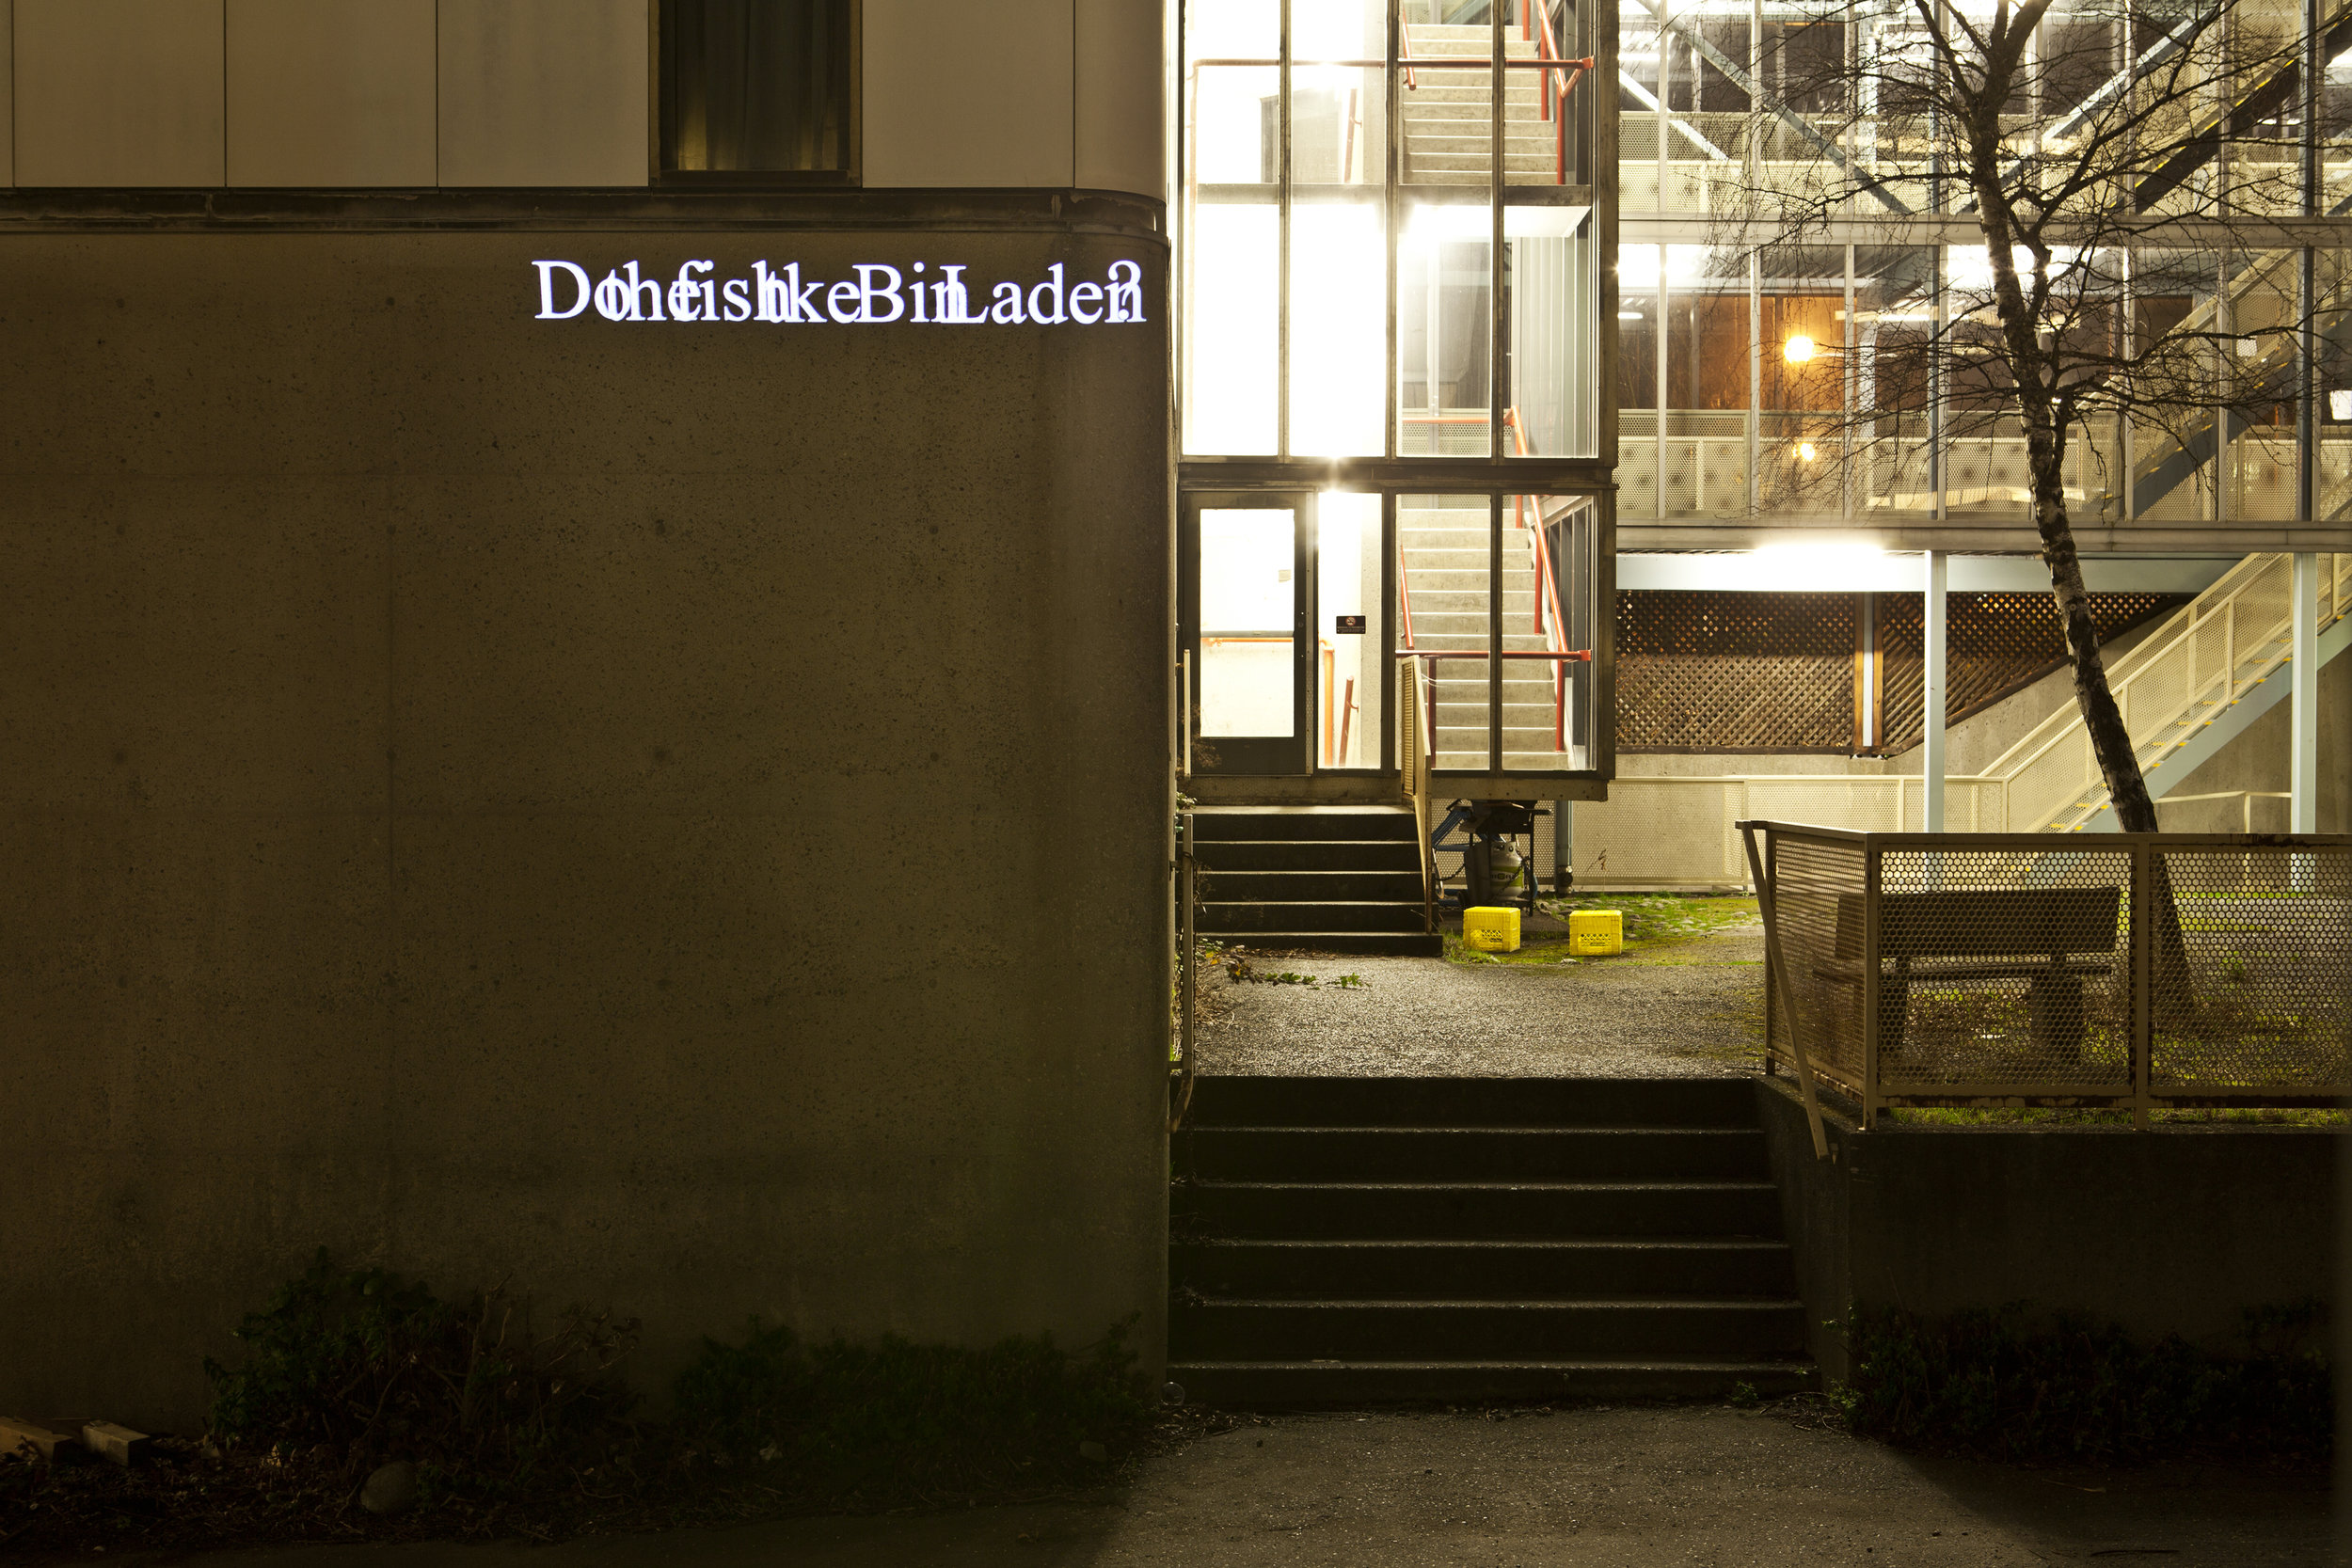 """HD Text projection onto UBC's Power building  """"  Do the Fish Like Bin Laden? """""""